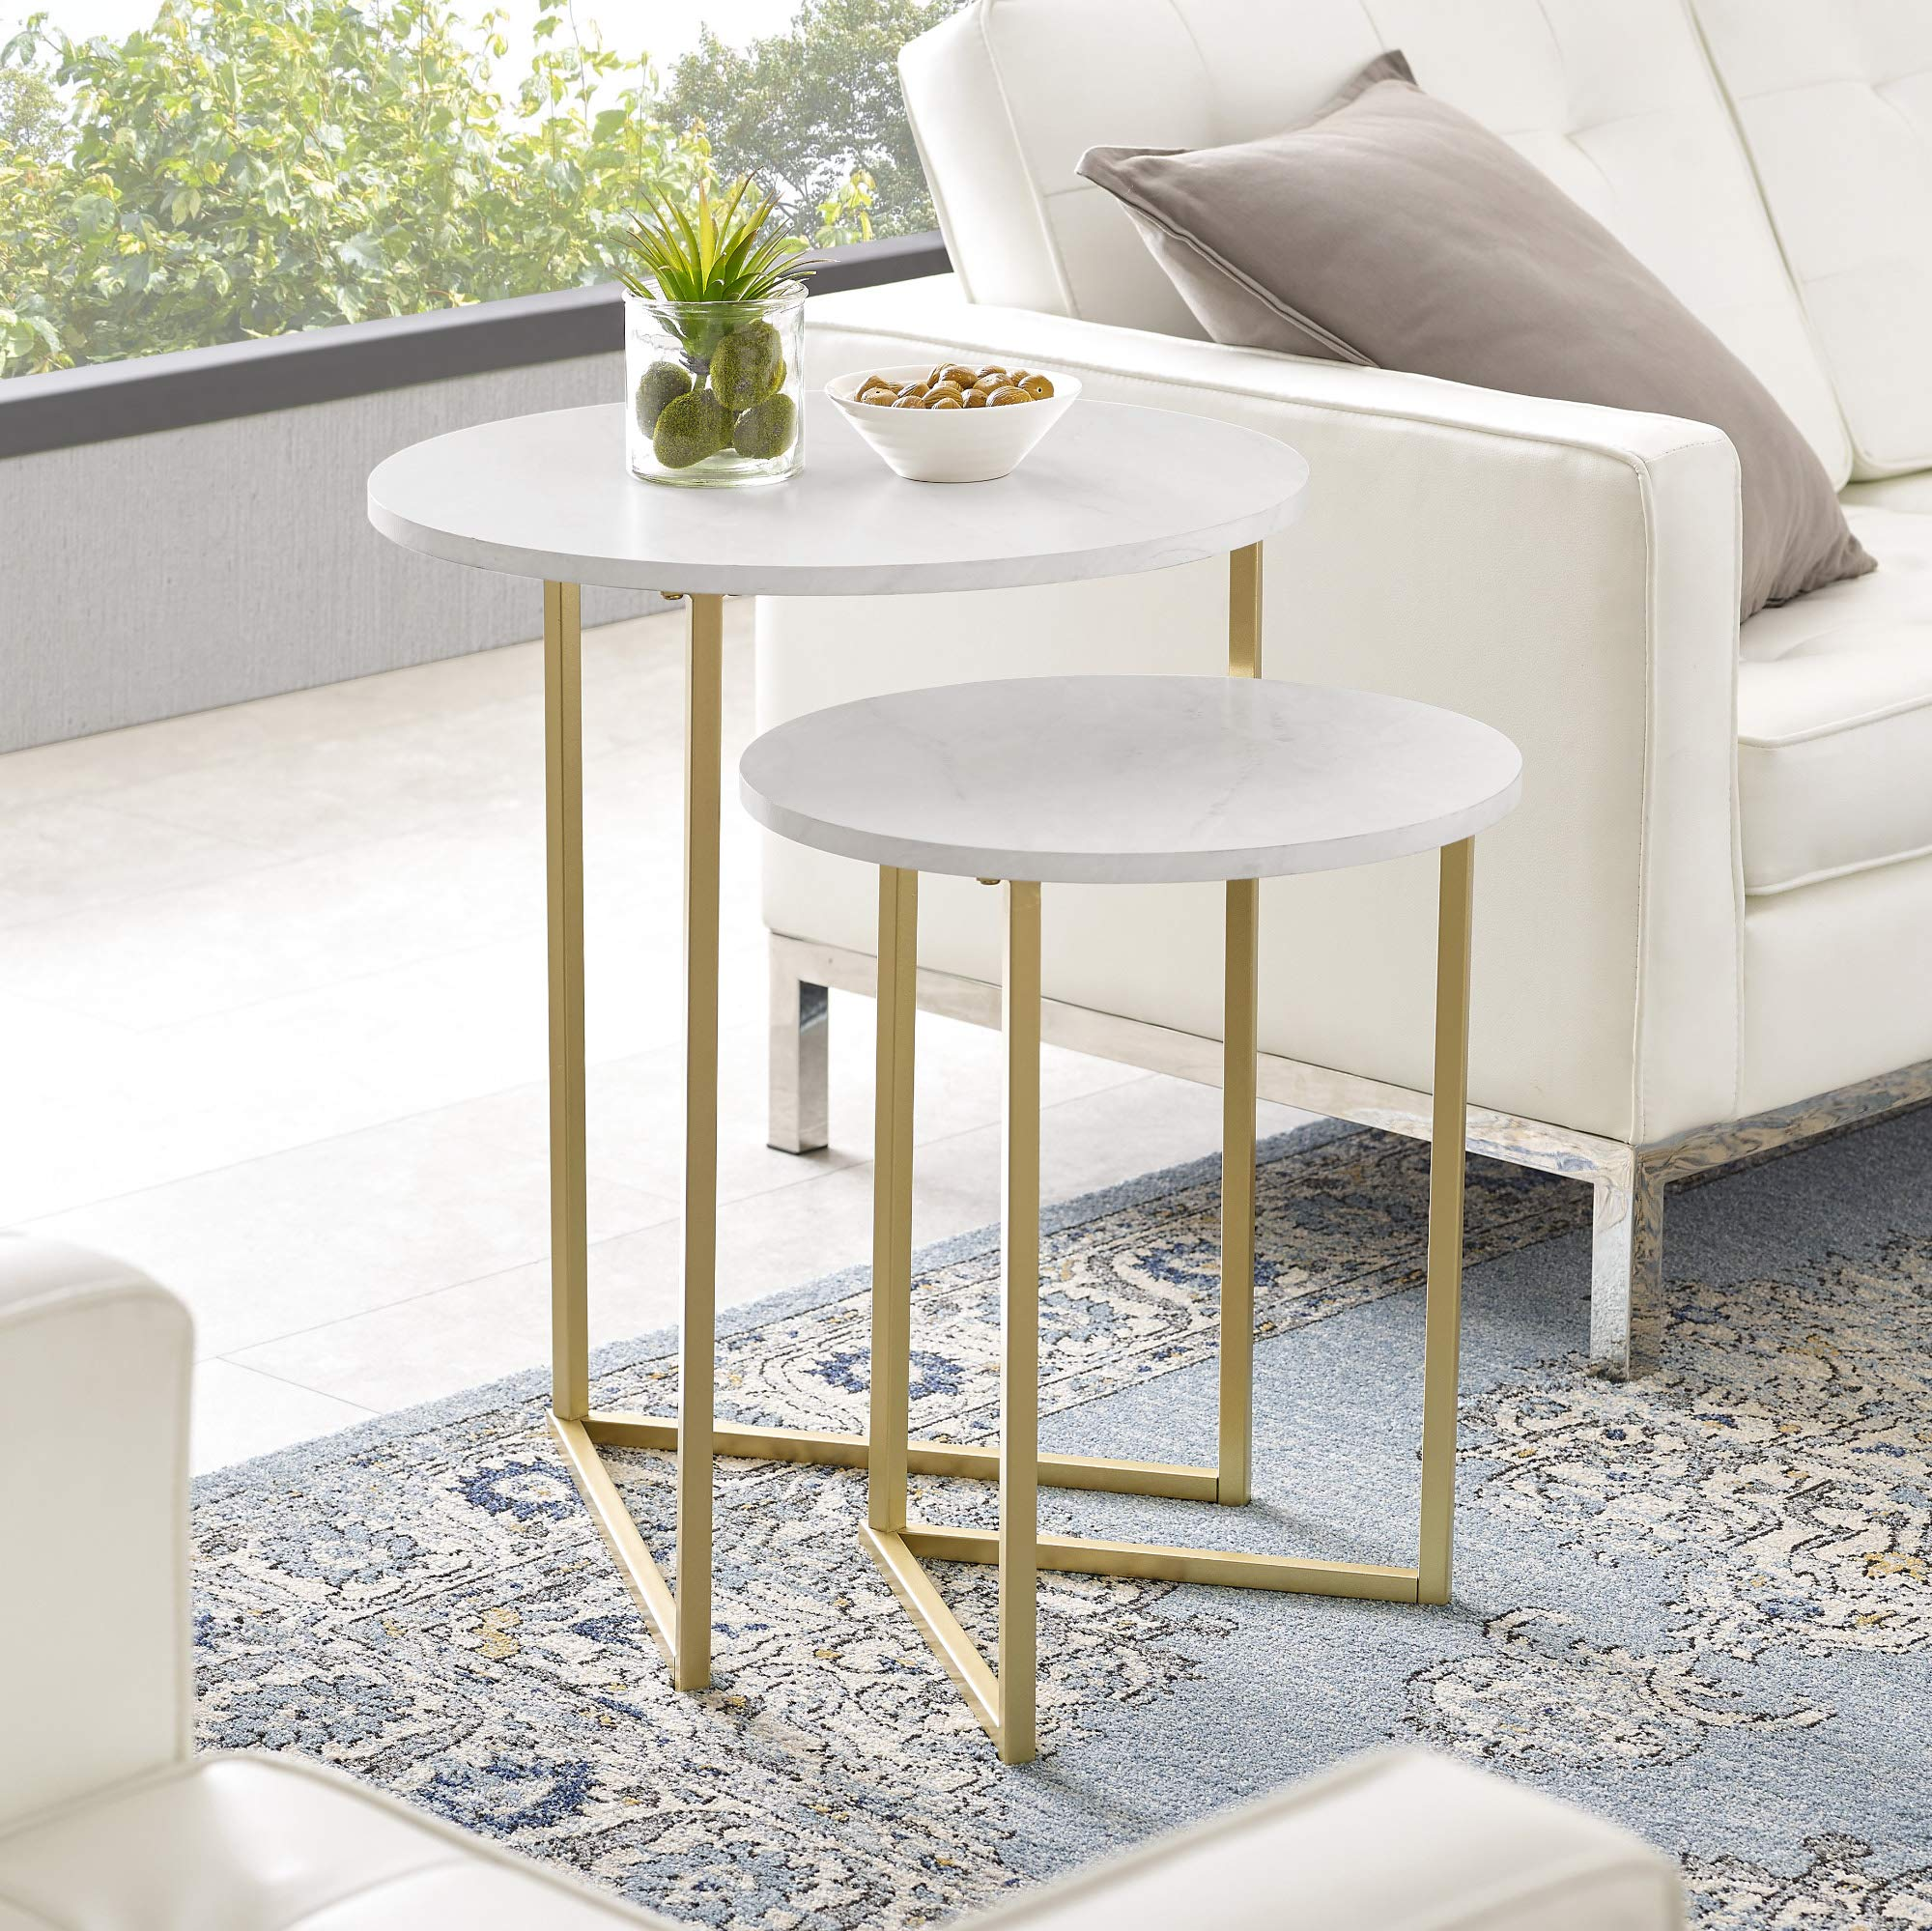 WE Furniture AZFVICNSTMW Side Table, White Faux Marble Nesting by WE Furniture